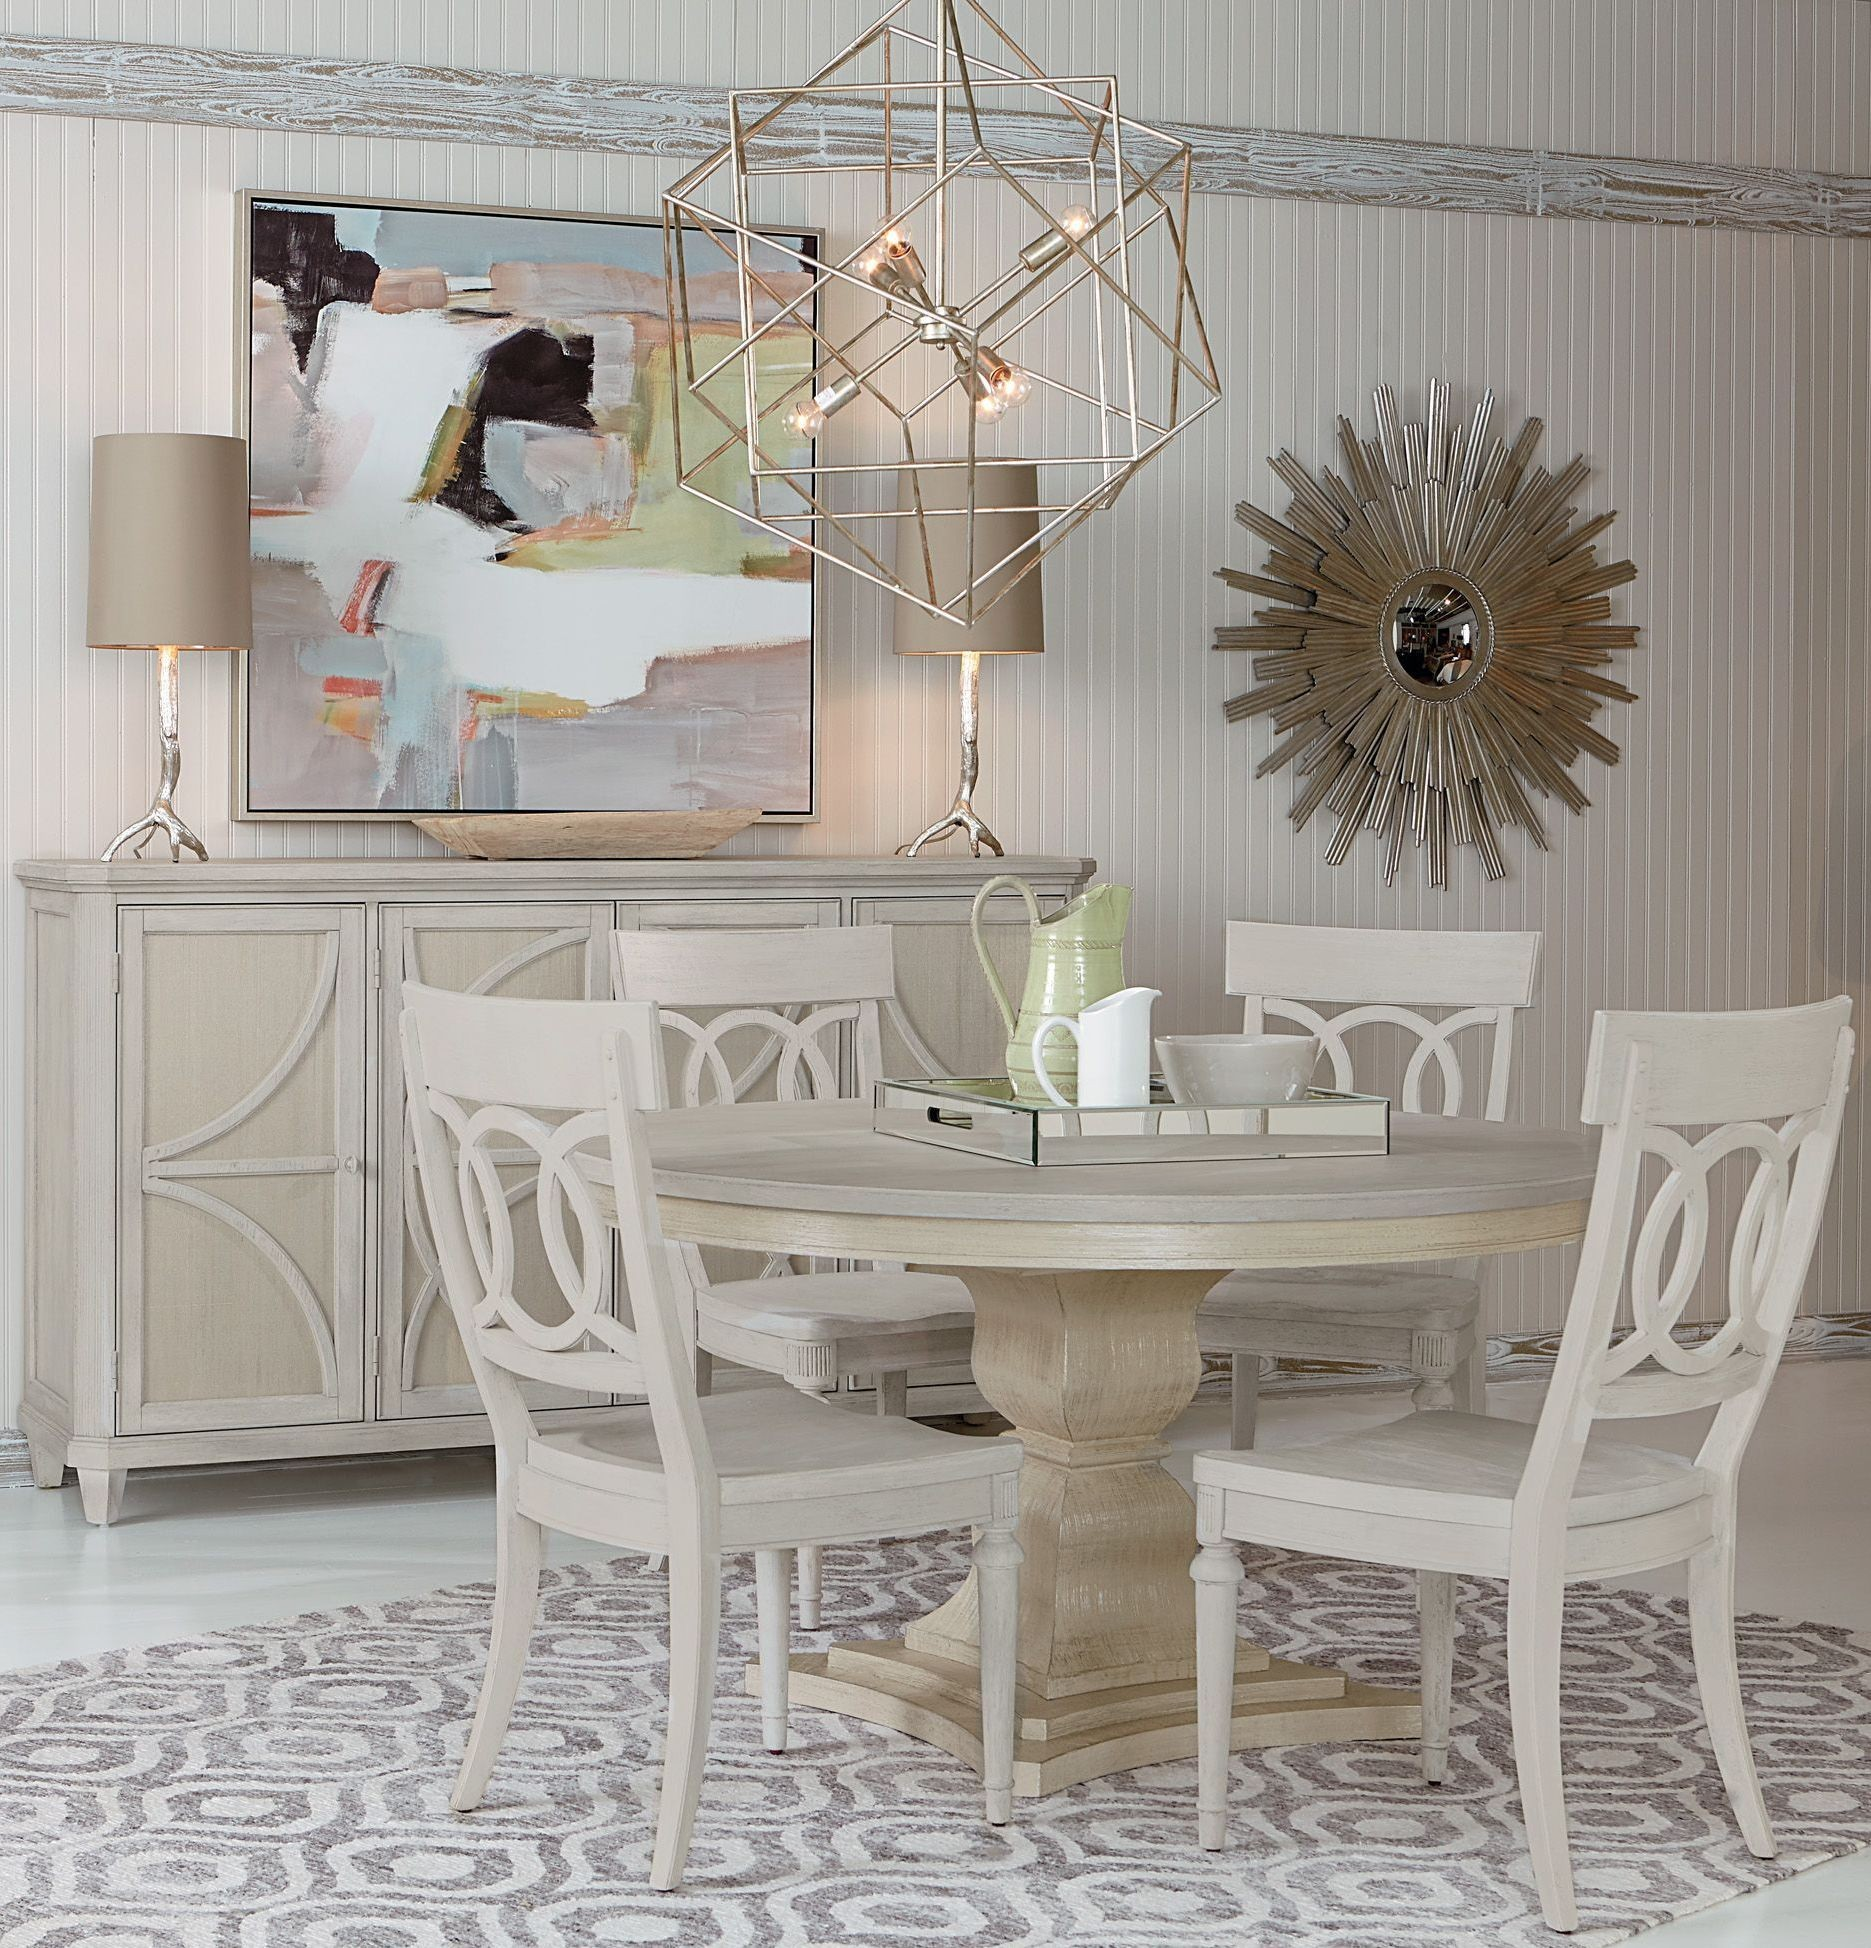 Circular Dining Room: Roseline Cream Enzo Round Dining Room Set From ART